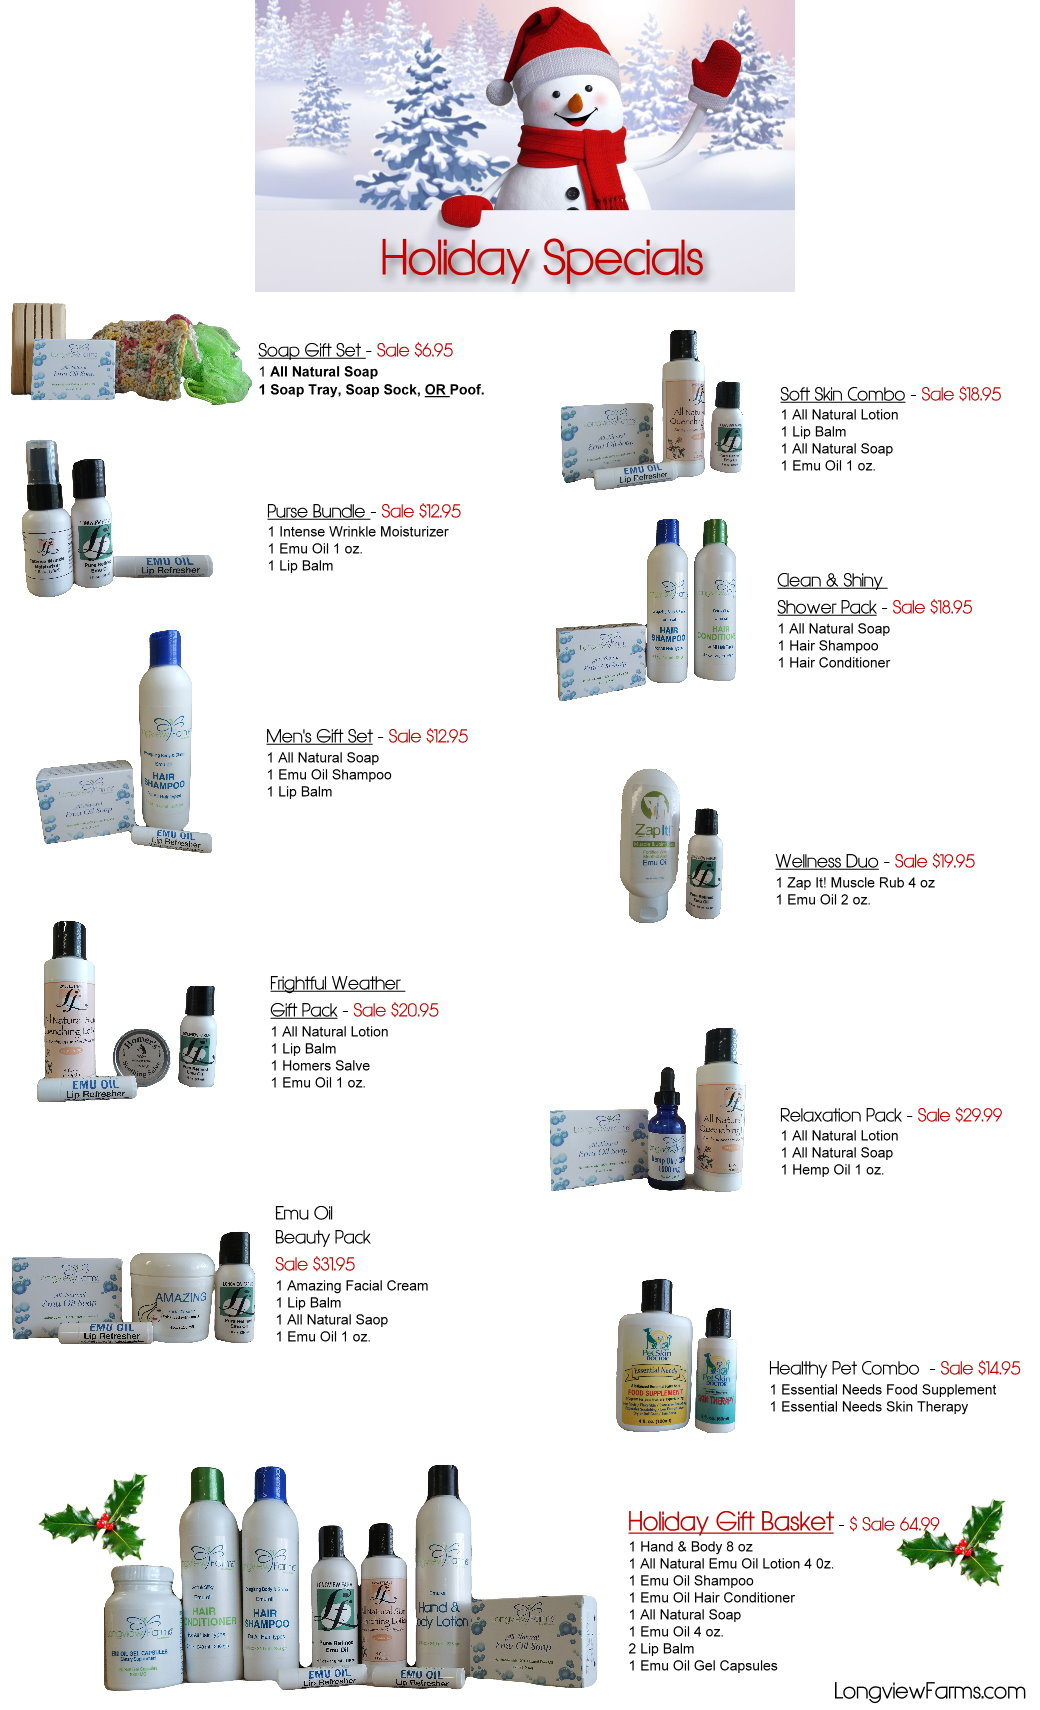 Gifts for Christmas of Emu Oil products from LongviewFarms.com. Gifts and Gift baskets